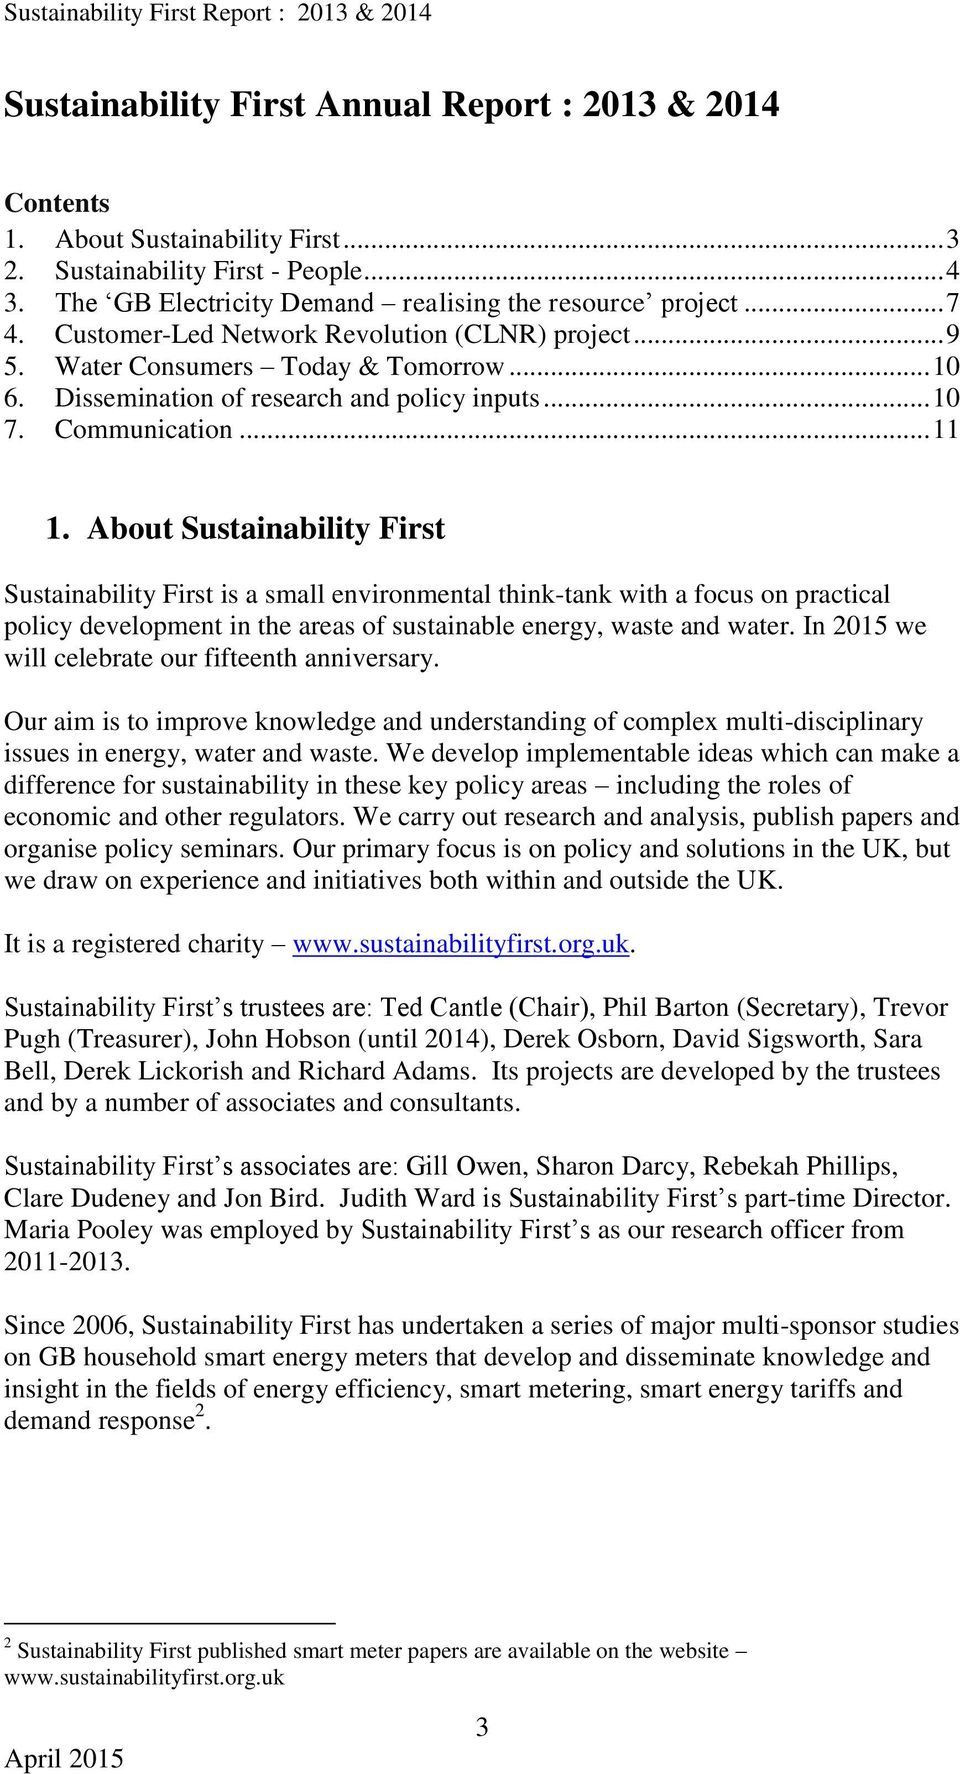 About Sustainability First Sustainability First is a small environmental think-tank with a focus on practical policy development in the areas of sustainable energy, waste and water.